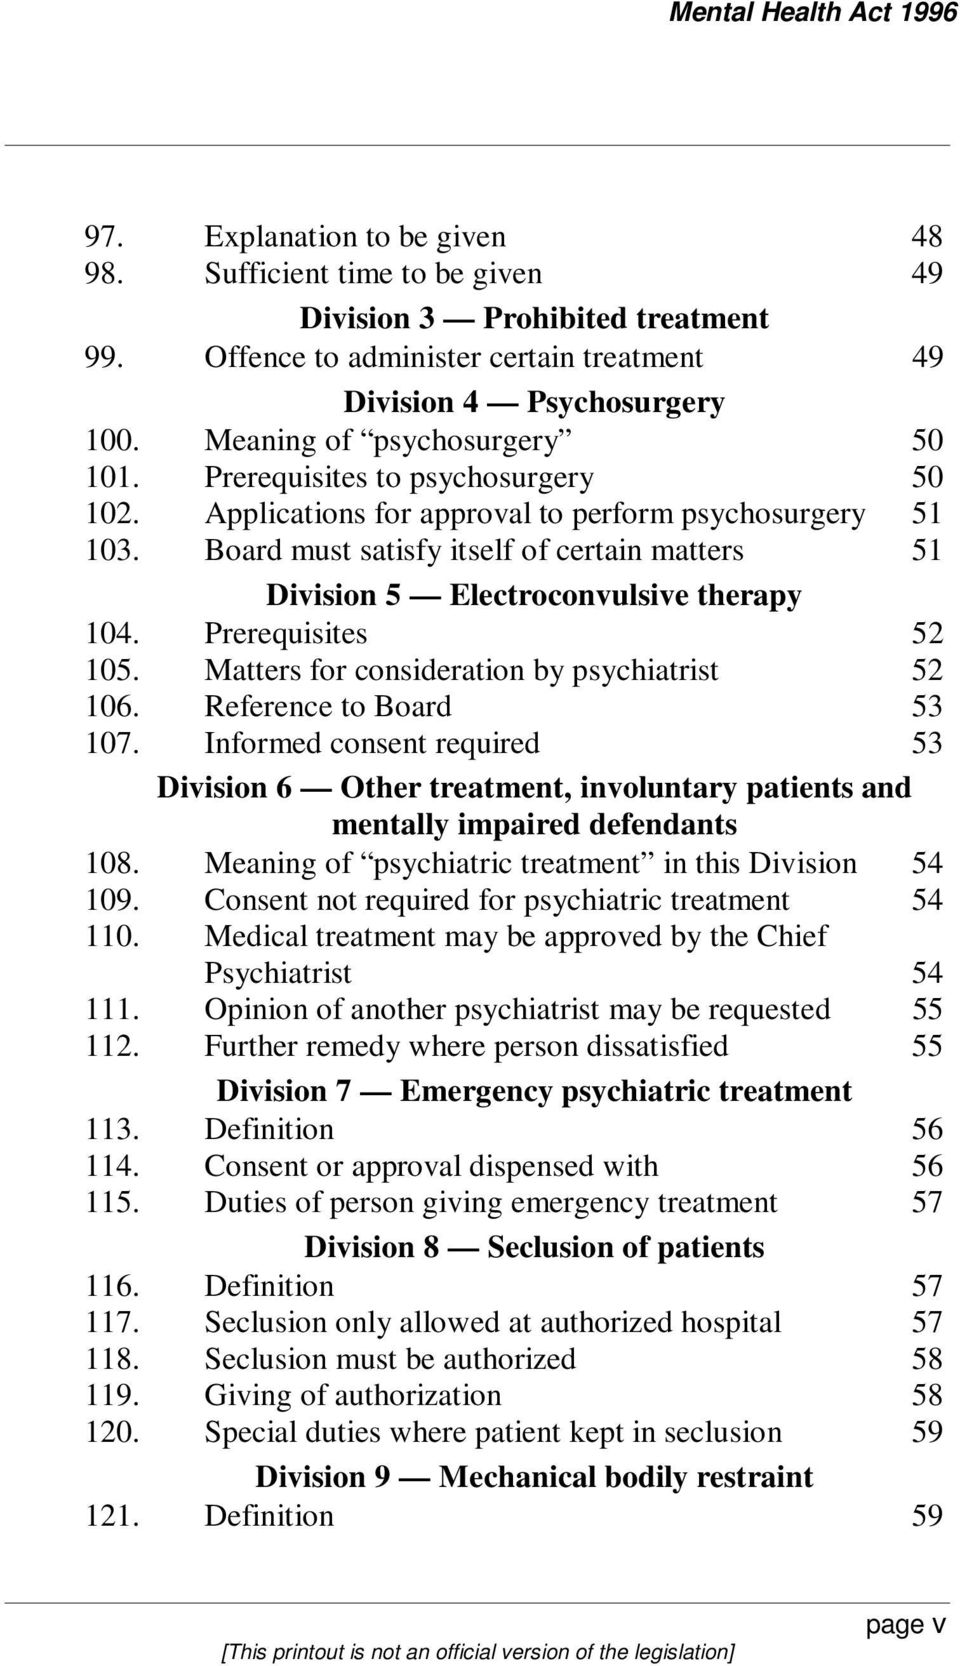 Board must satisfy itself of certain matters 51 Division 5 Electroconvulsive therapy 104. Prerequisites 52 105. Matters for consideration by psychiatrist 52 106. Reference to Board 53 107.